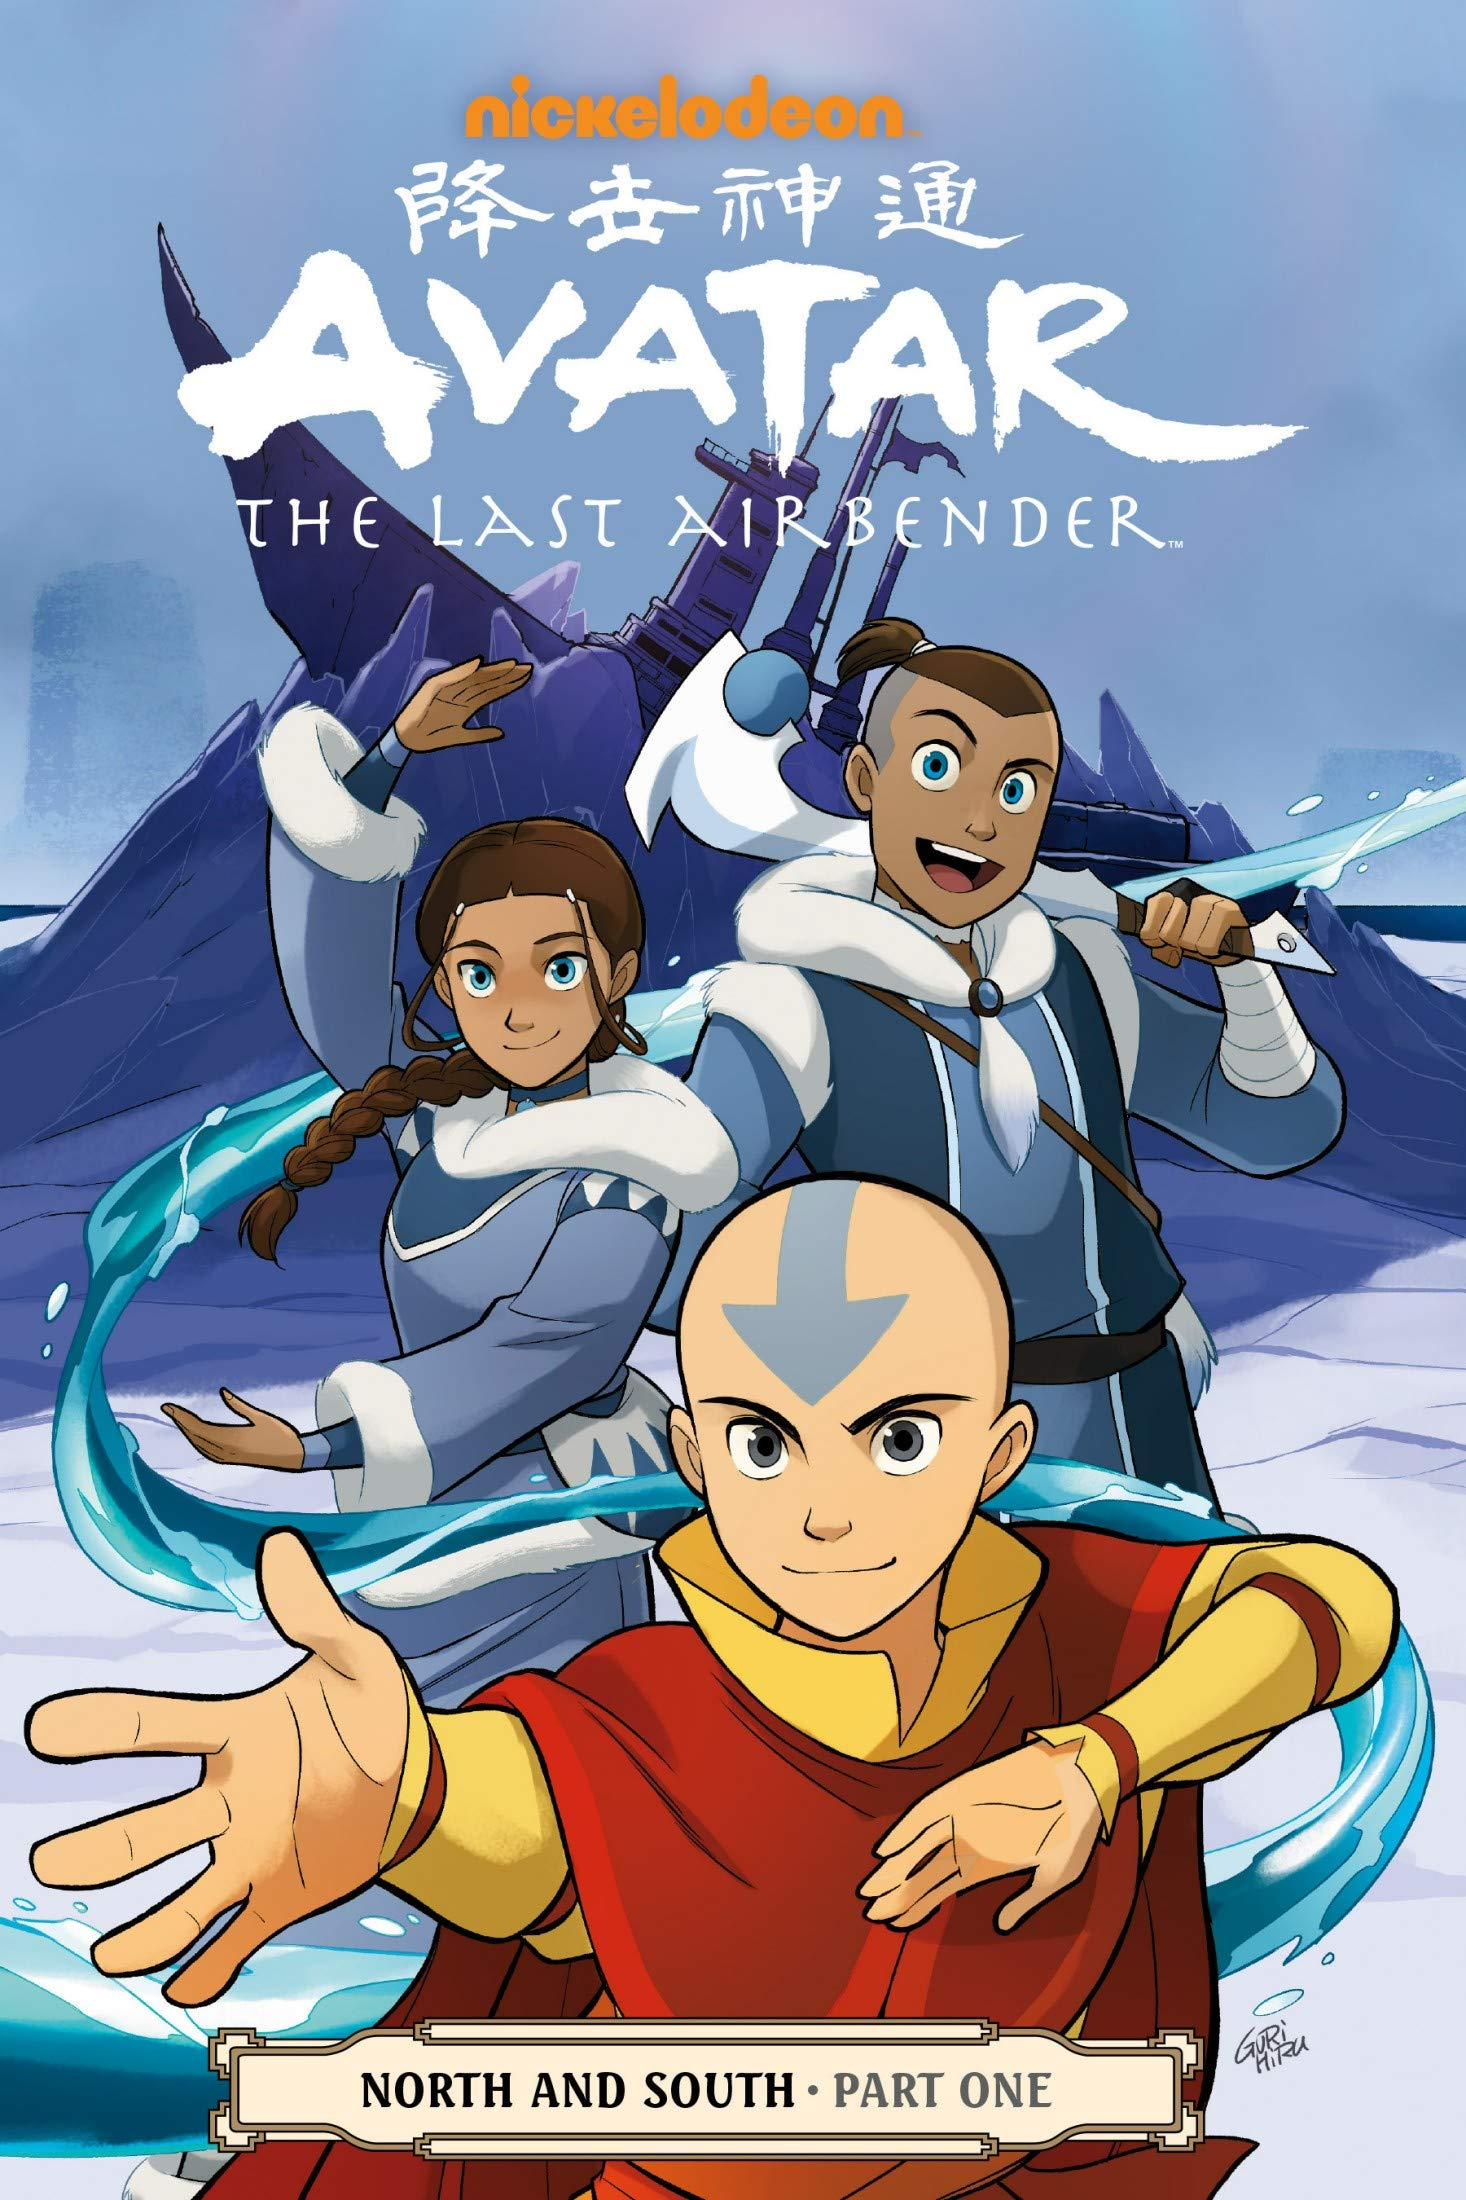 The Last: Airbender - Vol 1 Great Adventure Comic Avatar Graphic Novels For Young & Teens , Adults